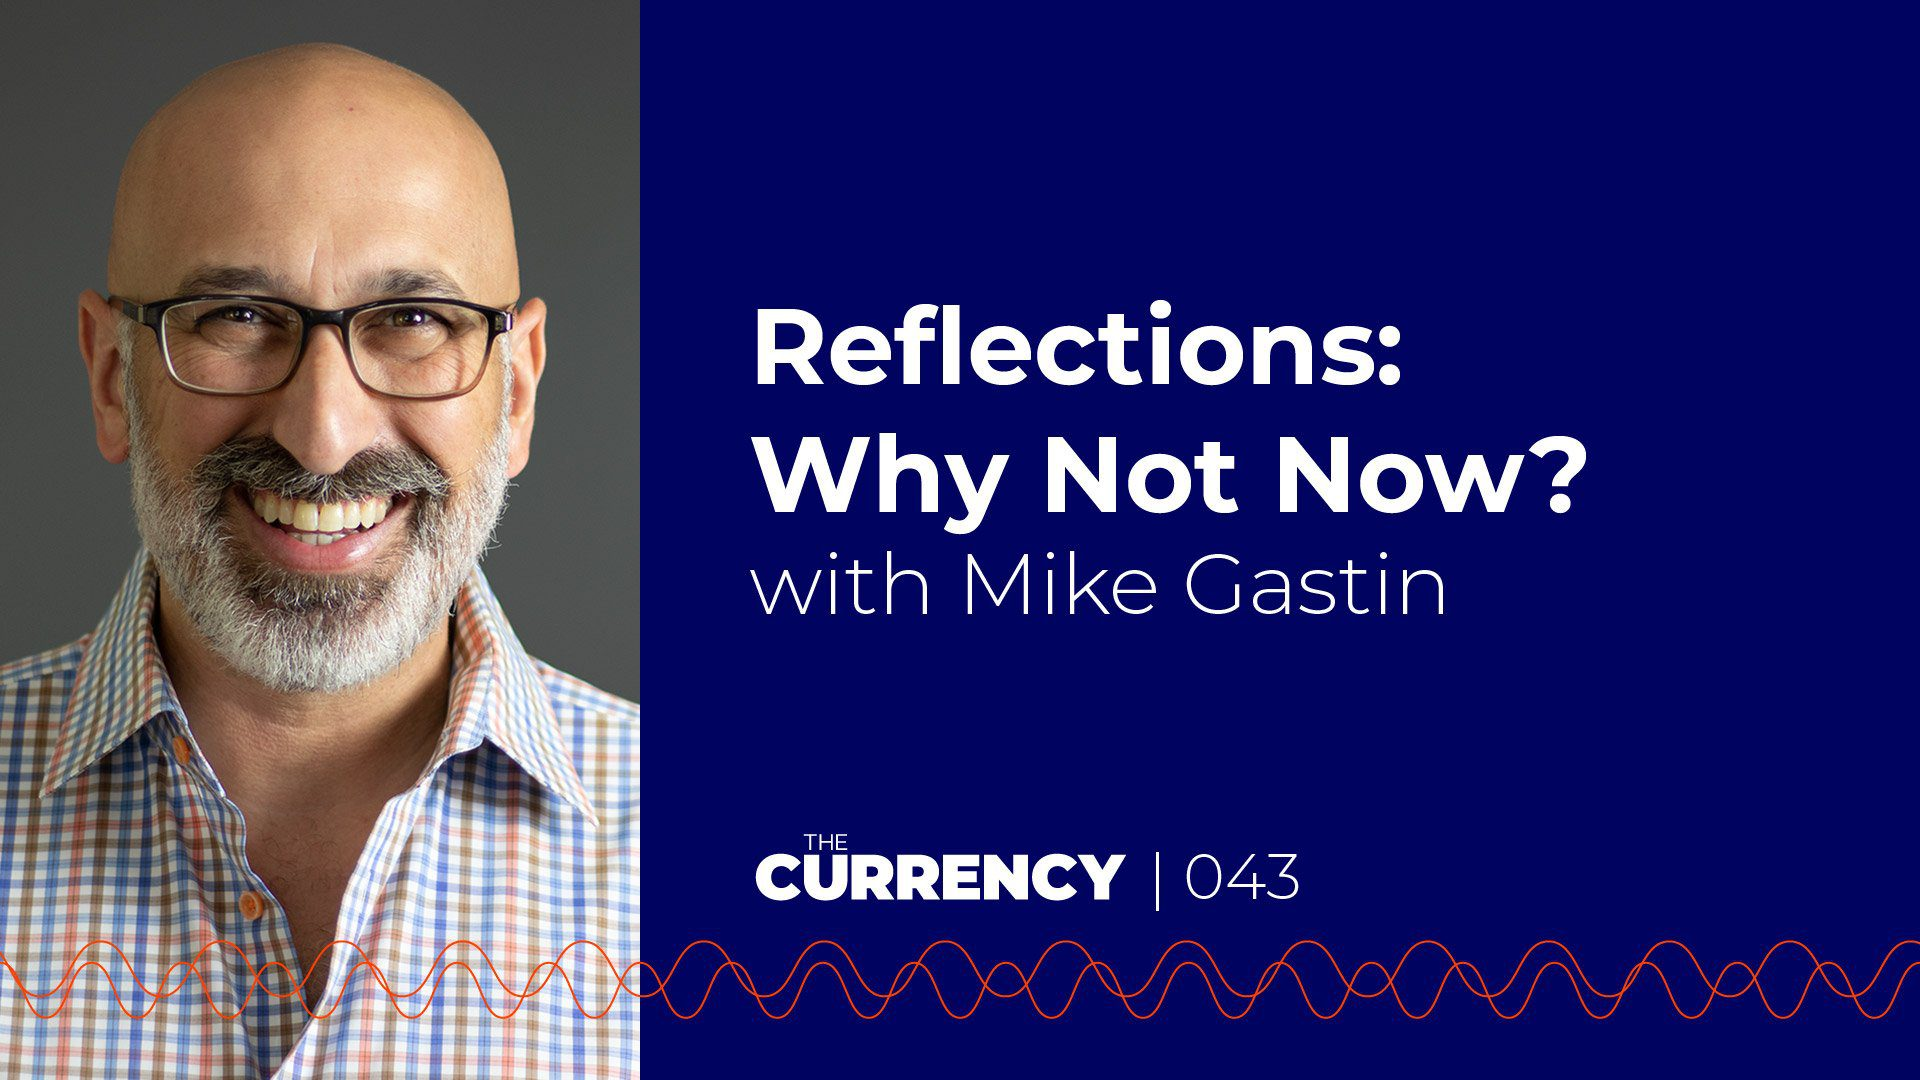 The Currency: [043] Reflections: Why Not Now?